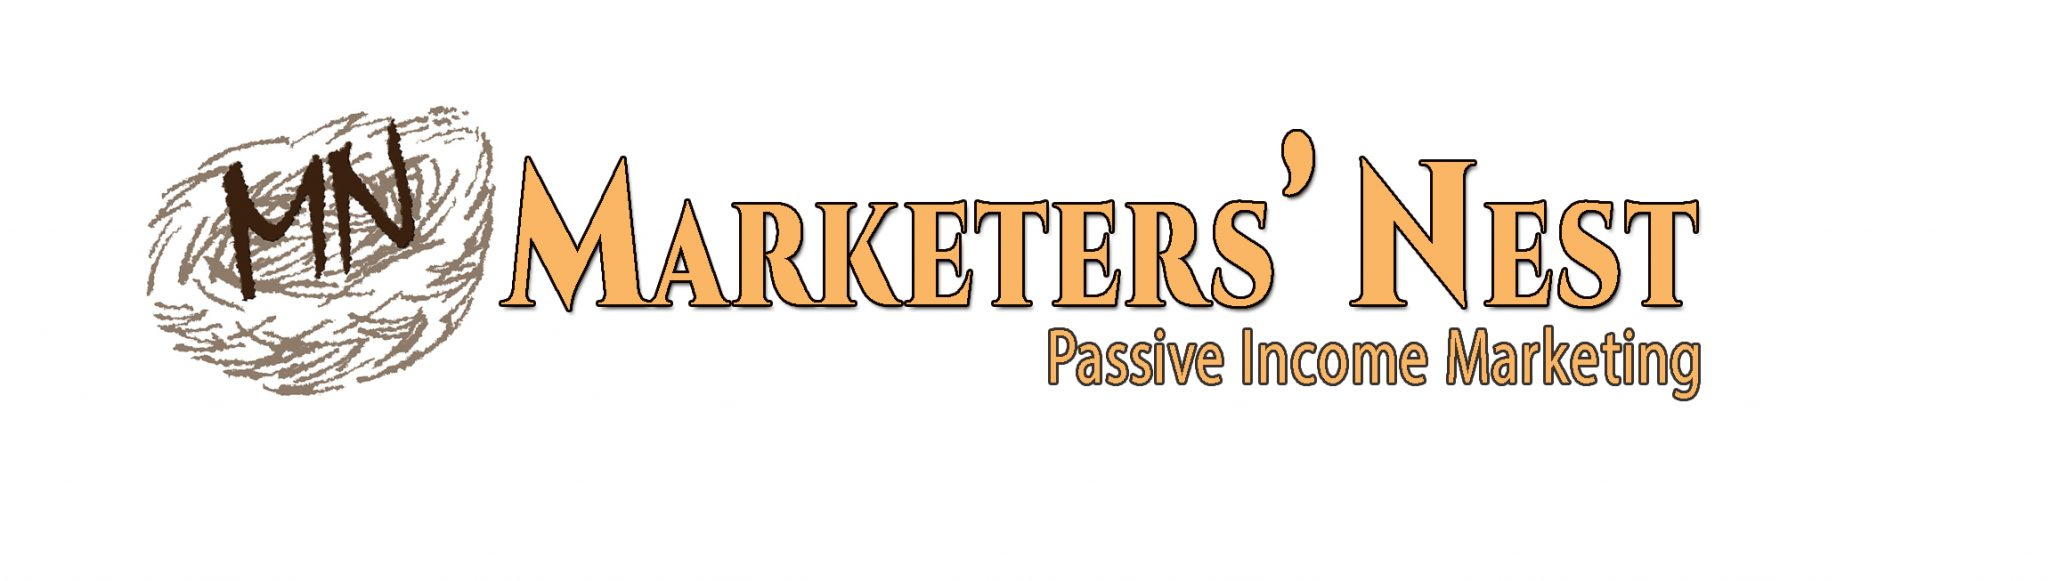 Marketers Nest